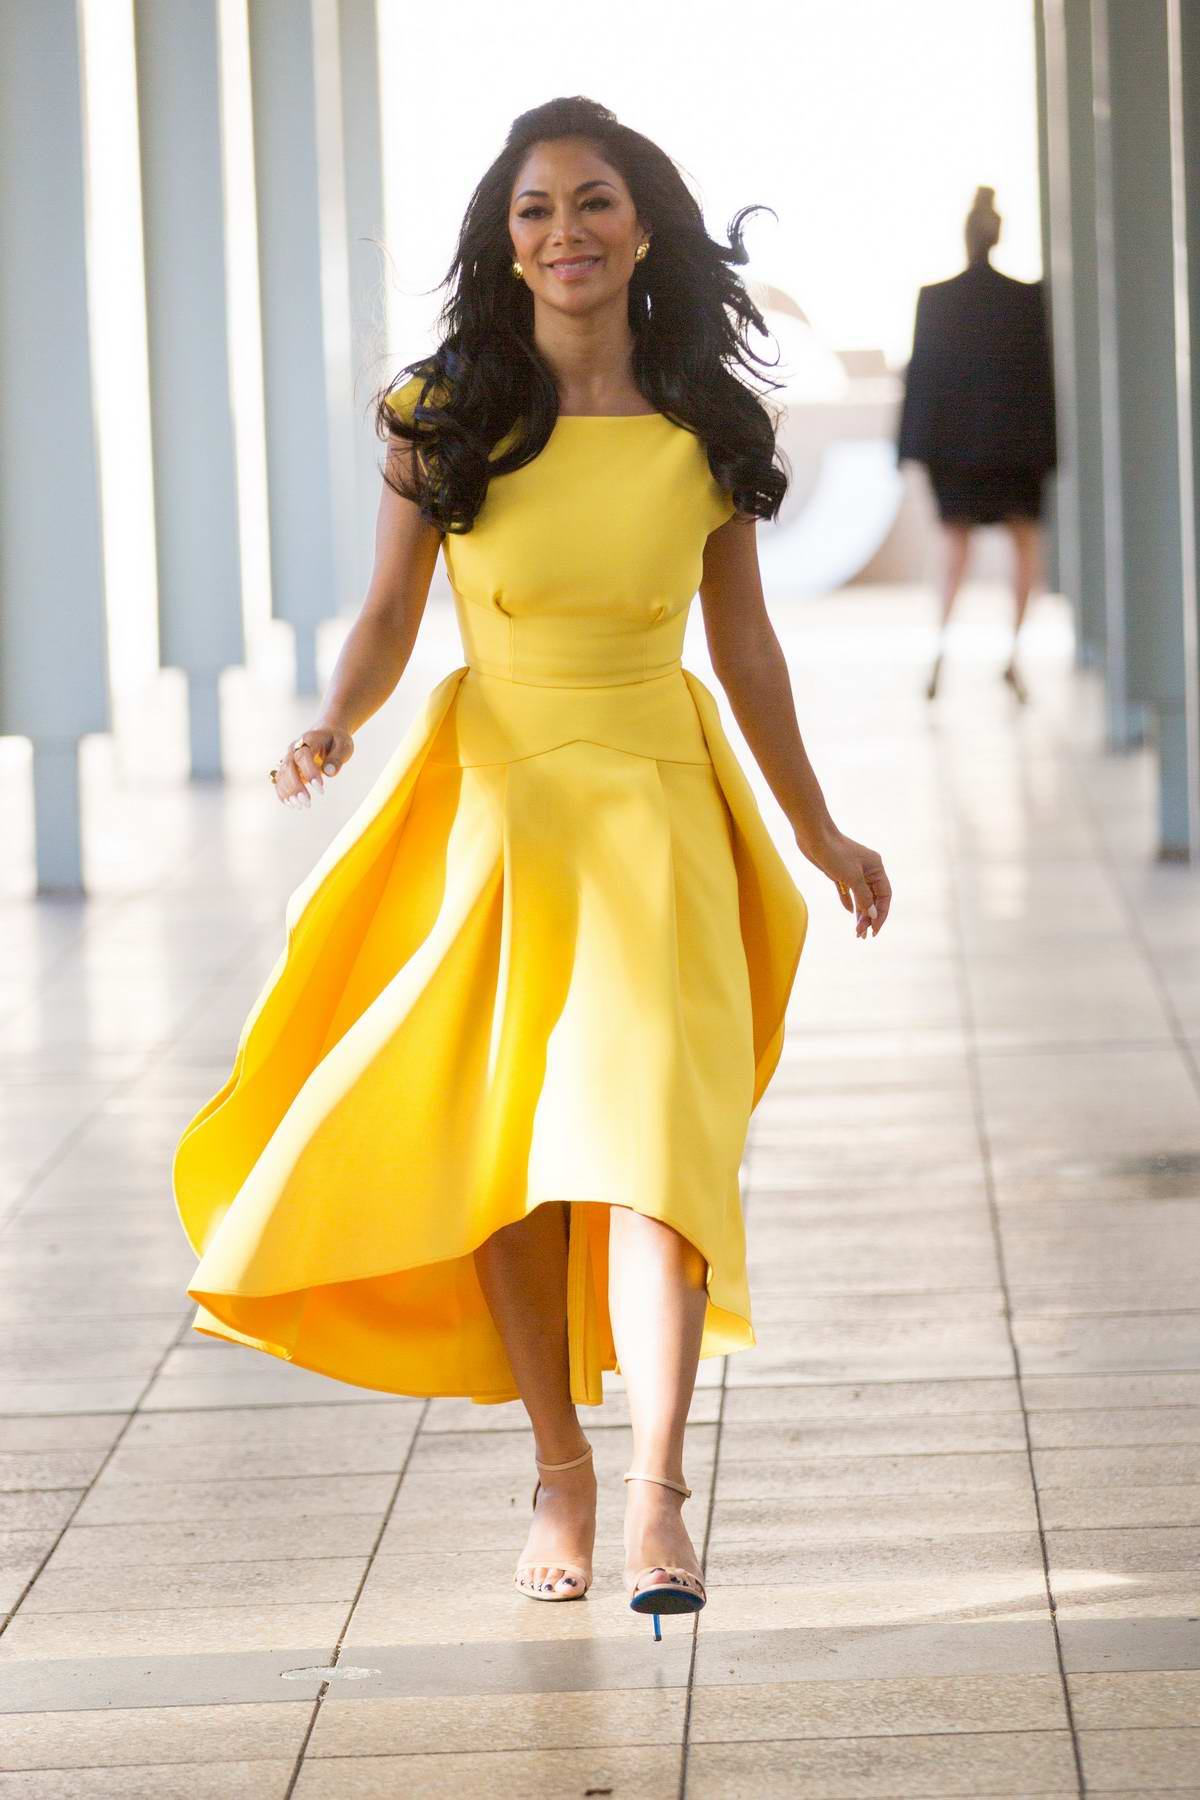 Nicole Scherzinger spotted in a yellow dress leaving after Nova radio interview in Pyrmont, Sydney, Australia